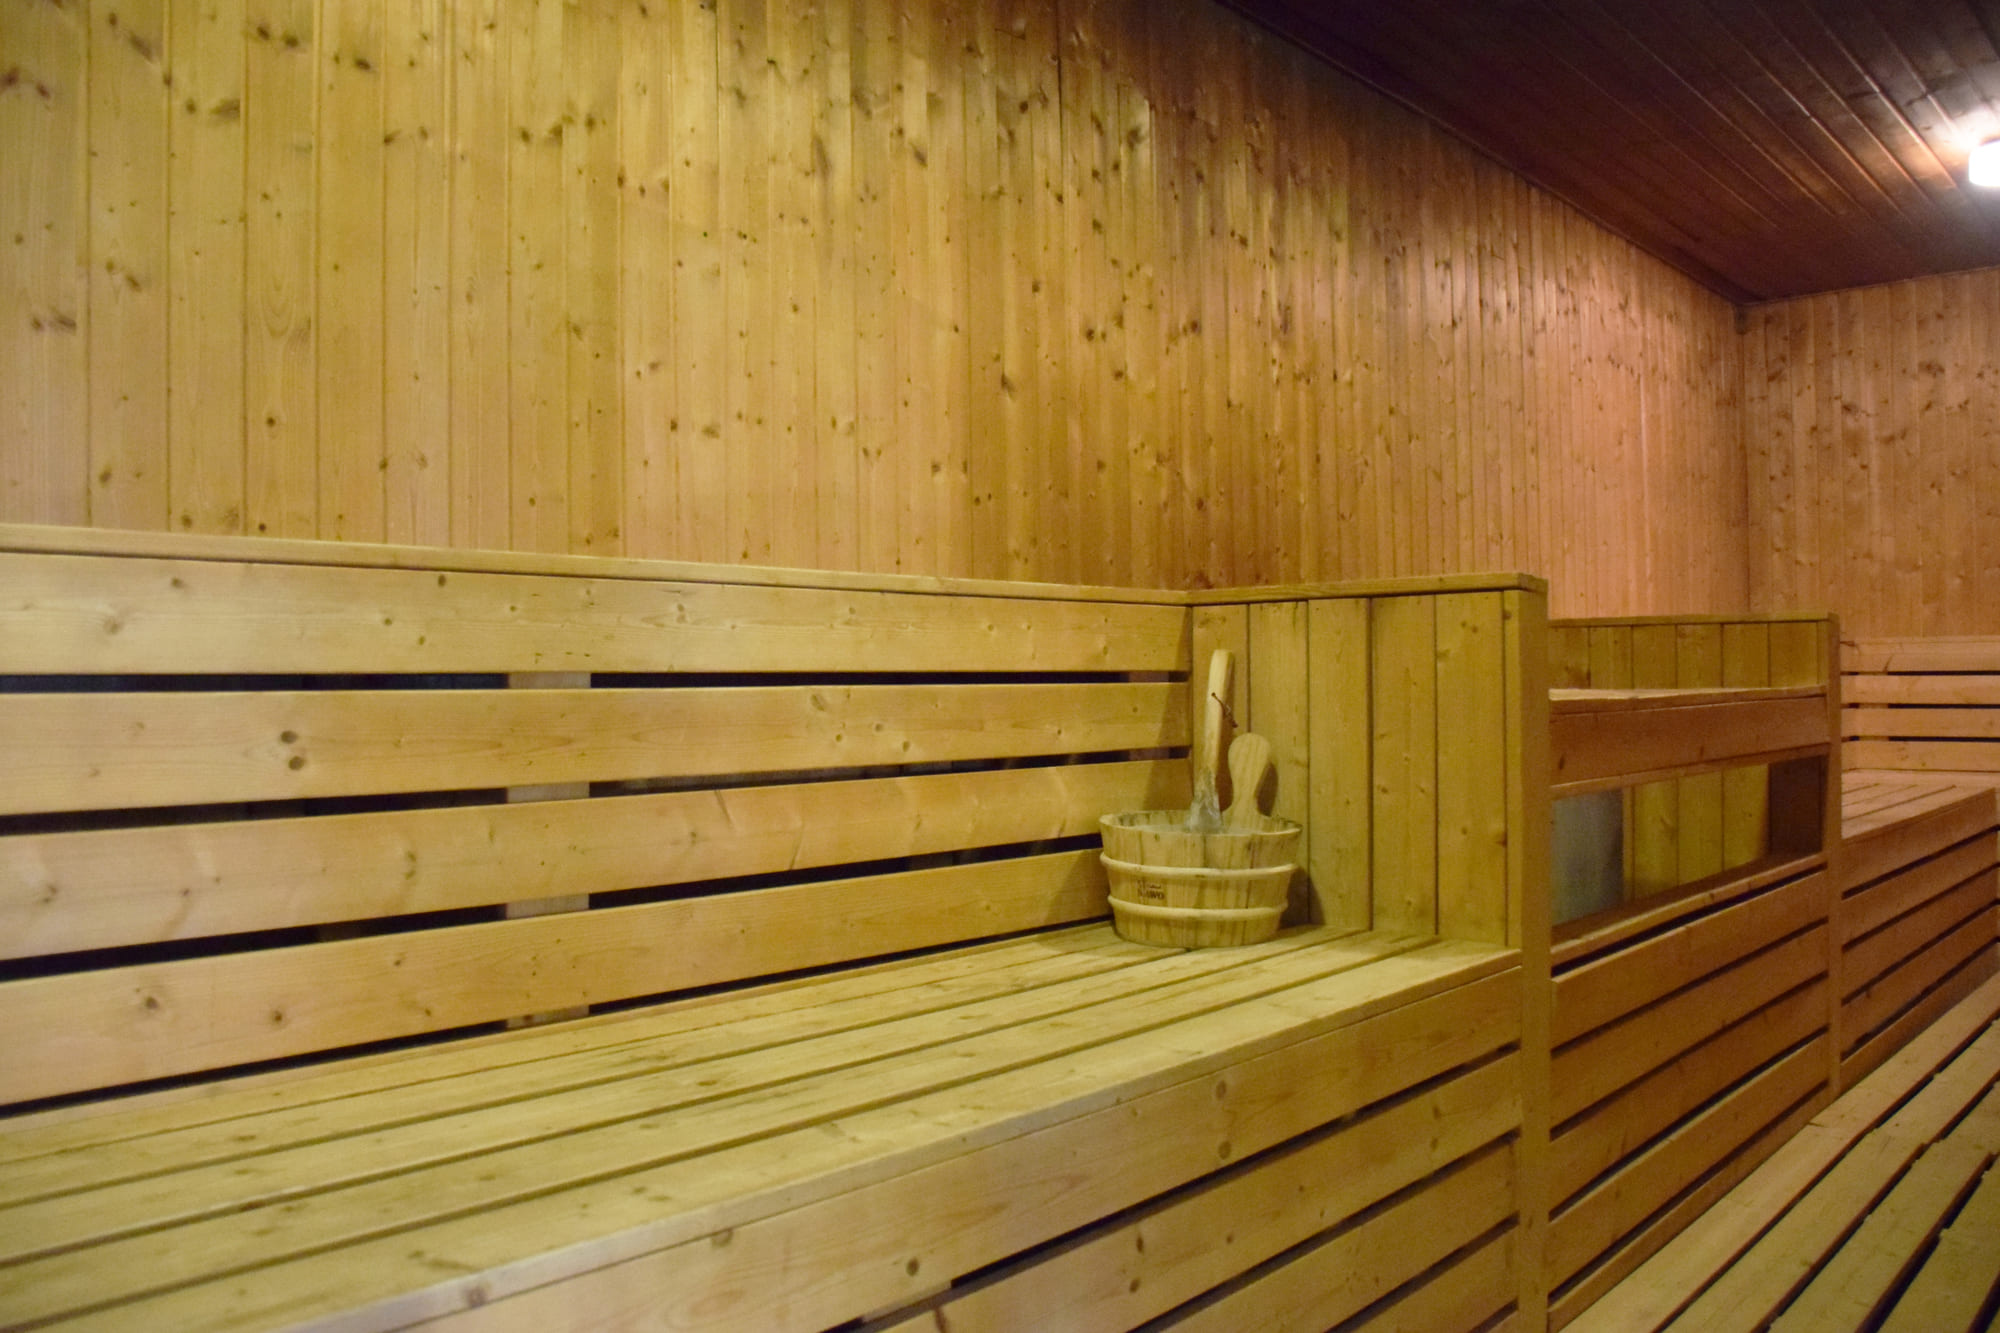 Steam-Sauna---DSC_0978-Resized--Edited-1-1.jpg